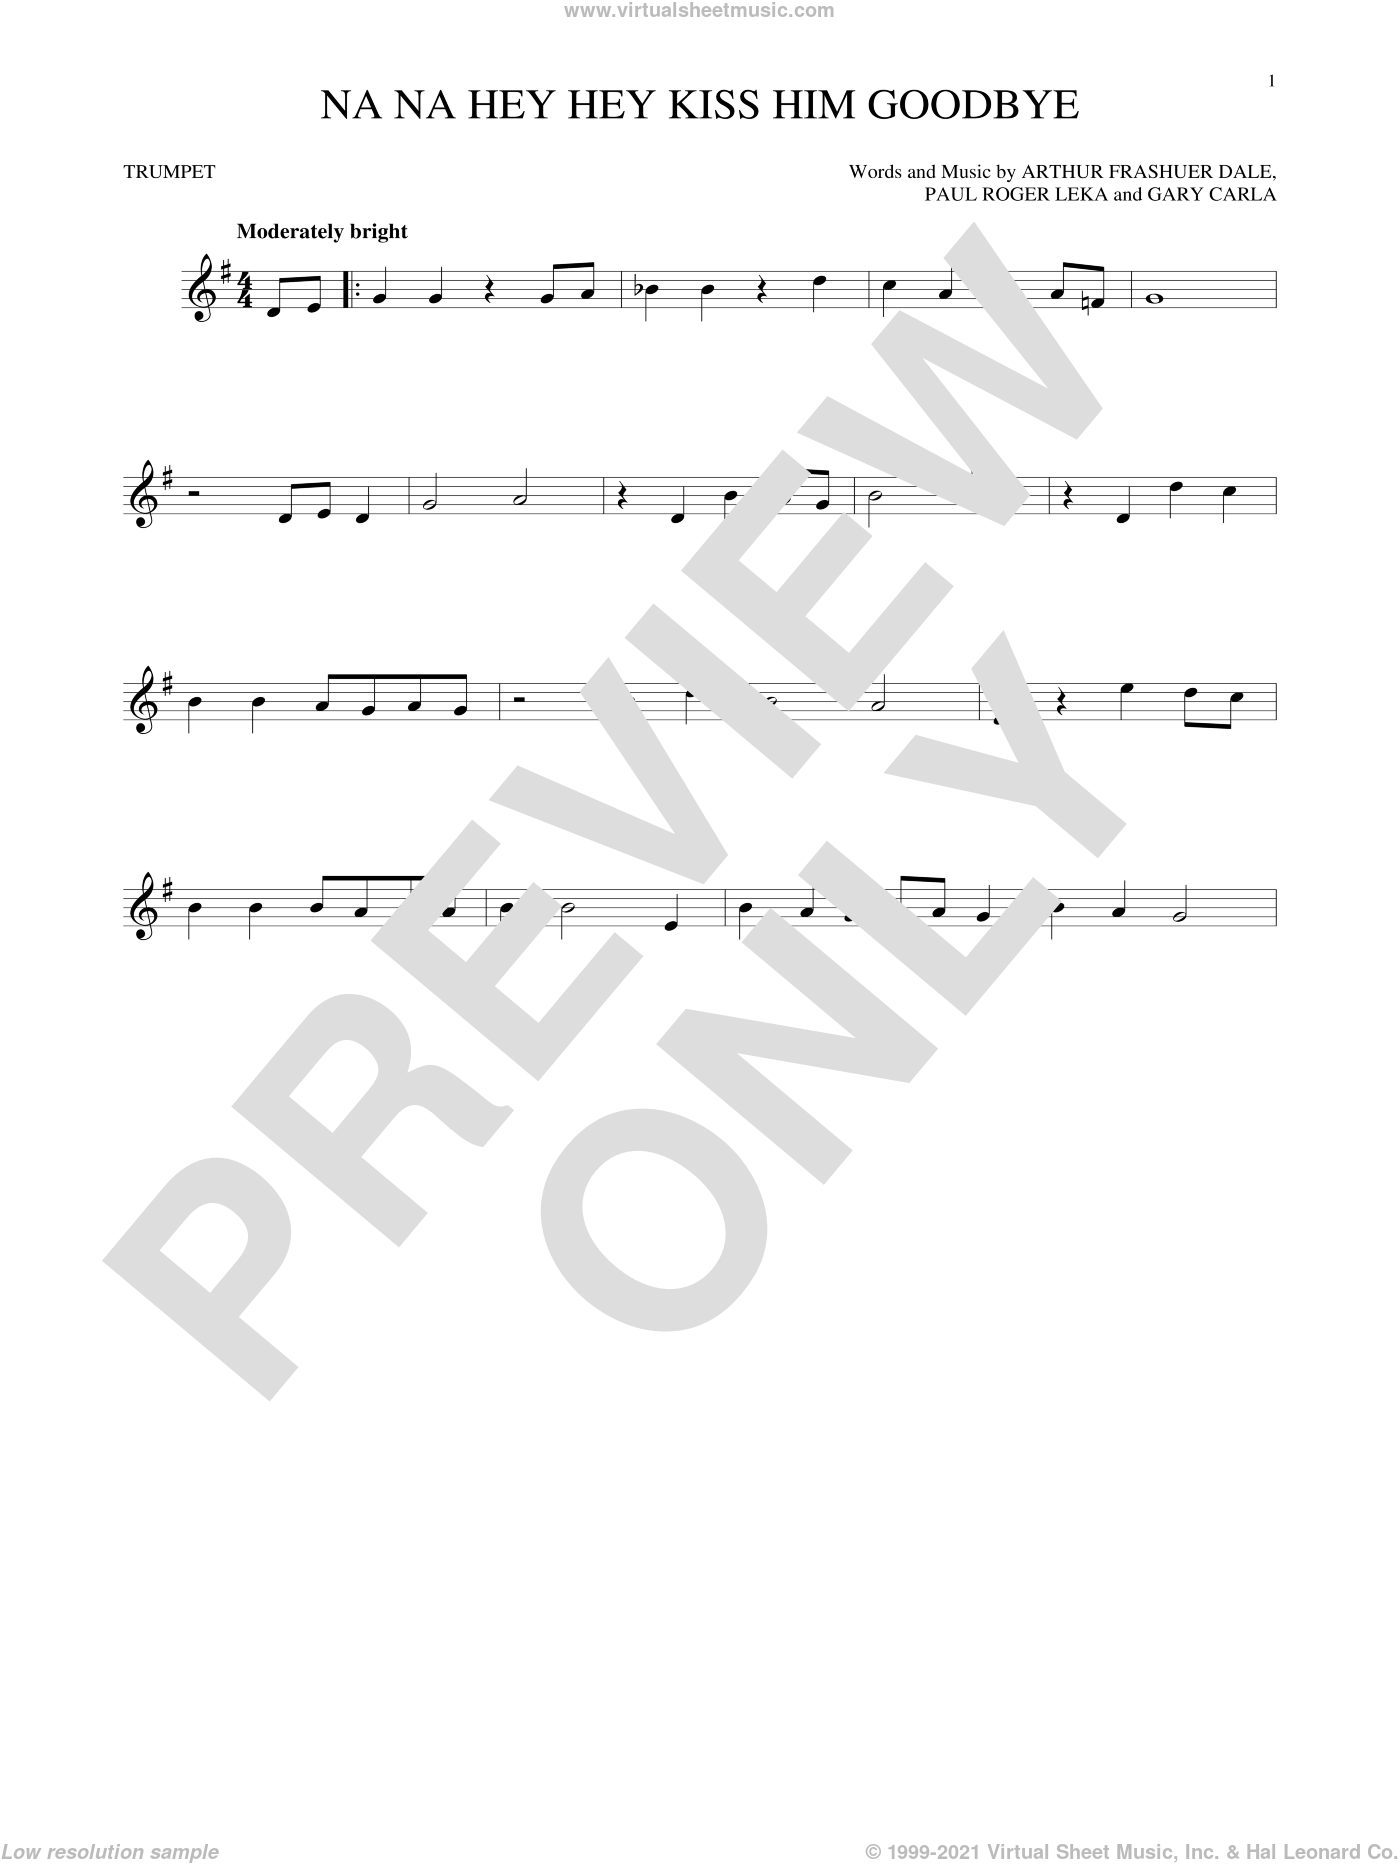 Na Na Hey Hey Kiss Him Goodbye sheet music for trumpet solo by Paul Leka, Steam, Dale Frashuer and Gary De Carlo. Score Image Preview.